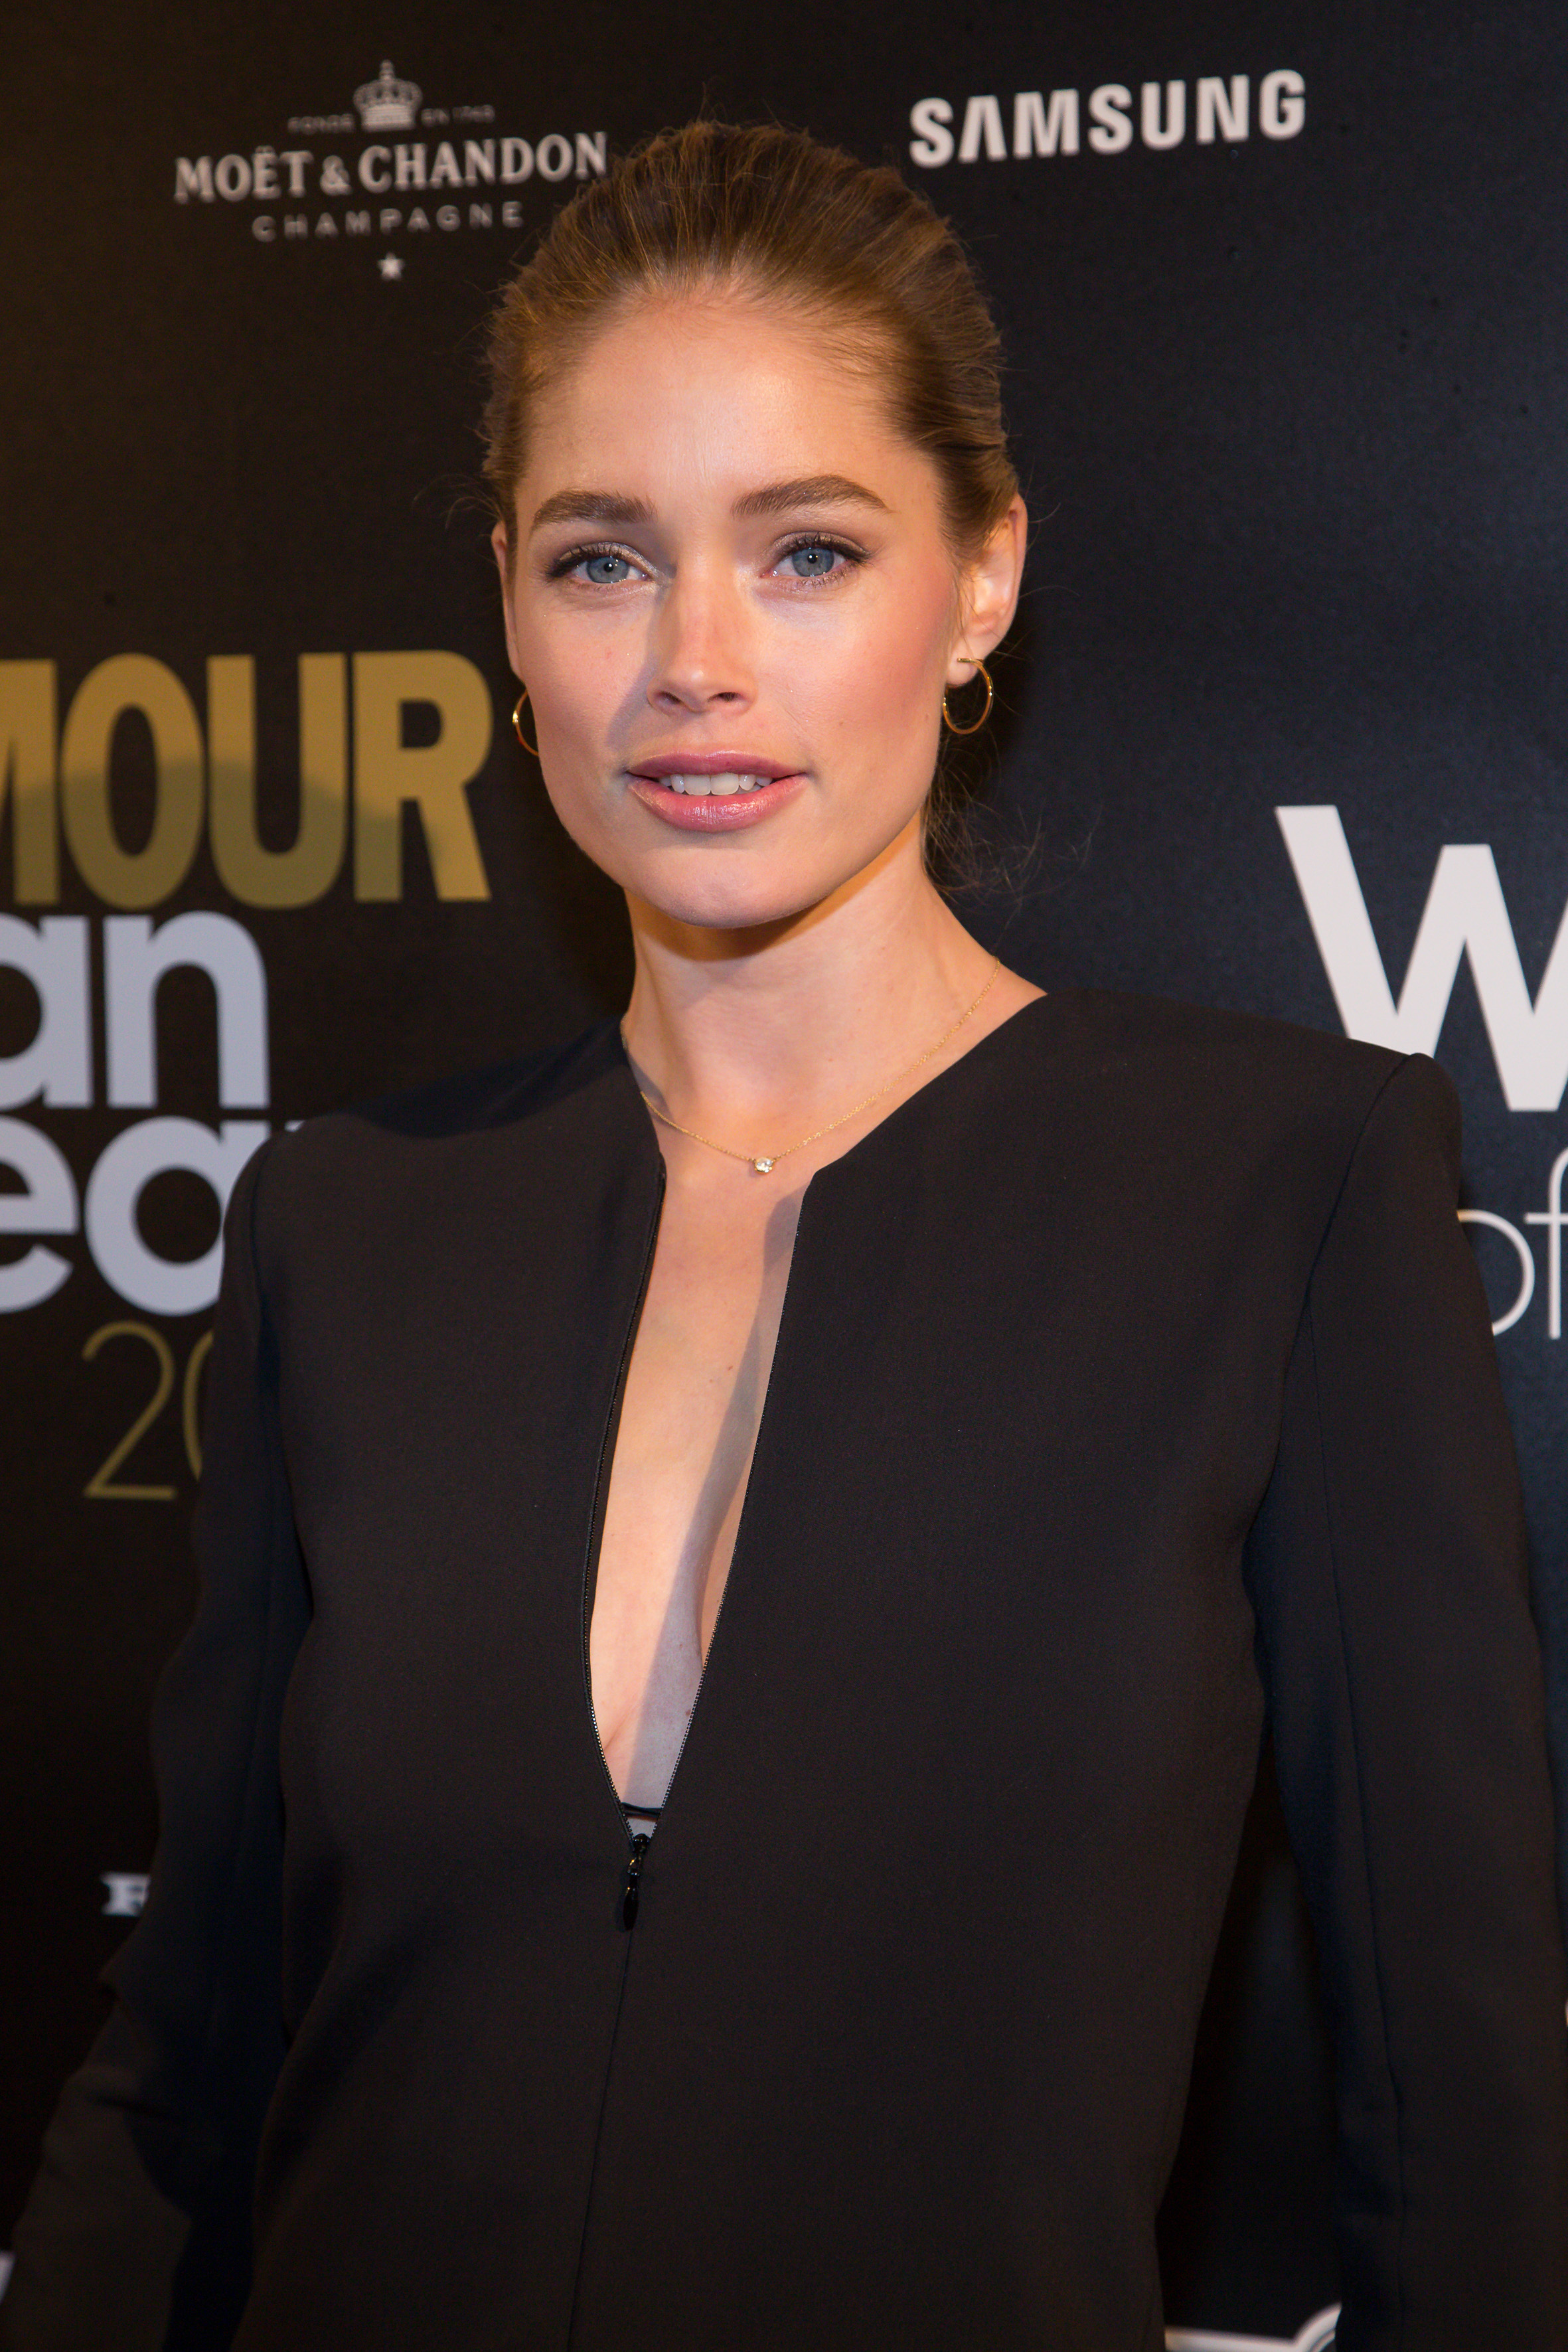 Doutzen wint Glamour's Woman of the Year award